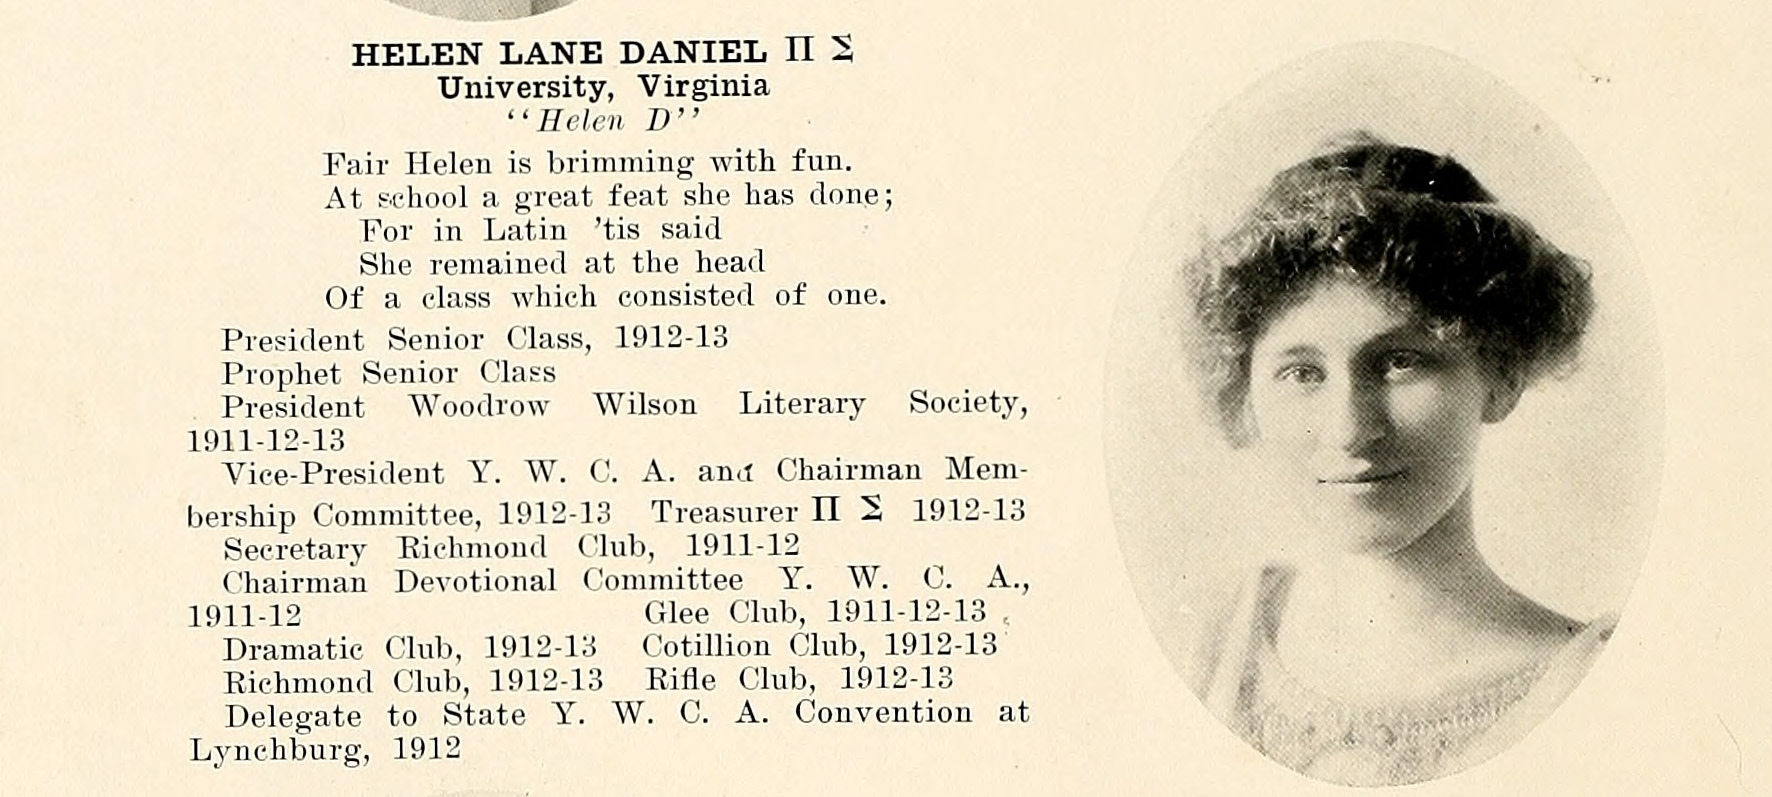 Photograph of Helen Lane Daniels from the 1913 Battlefield yearbook